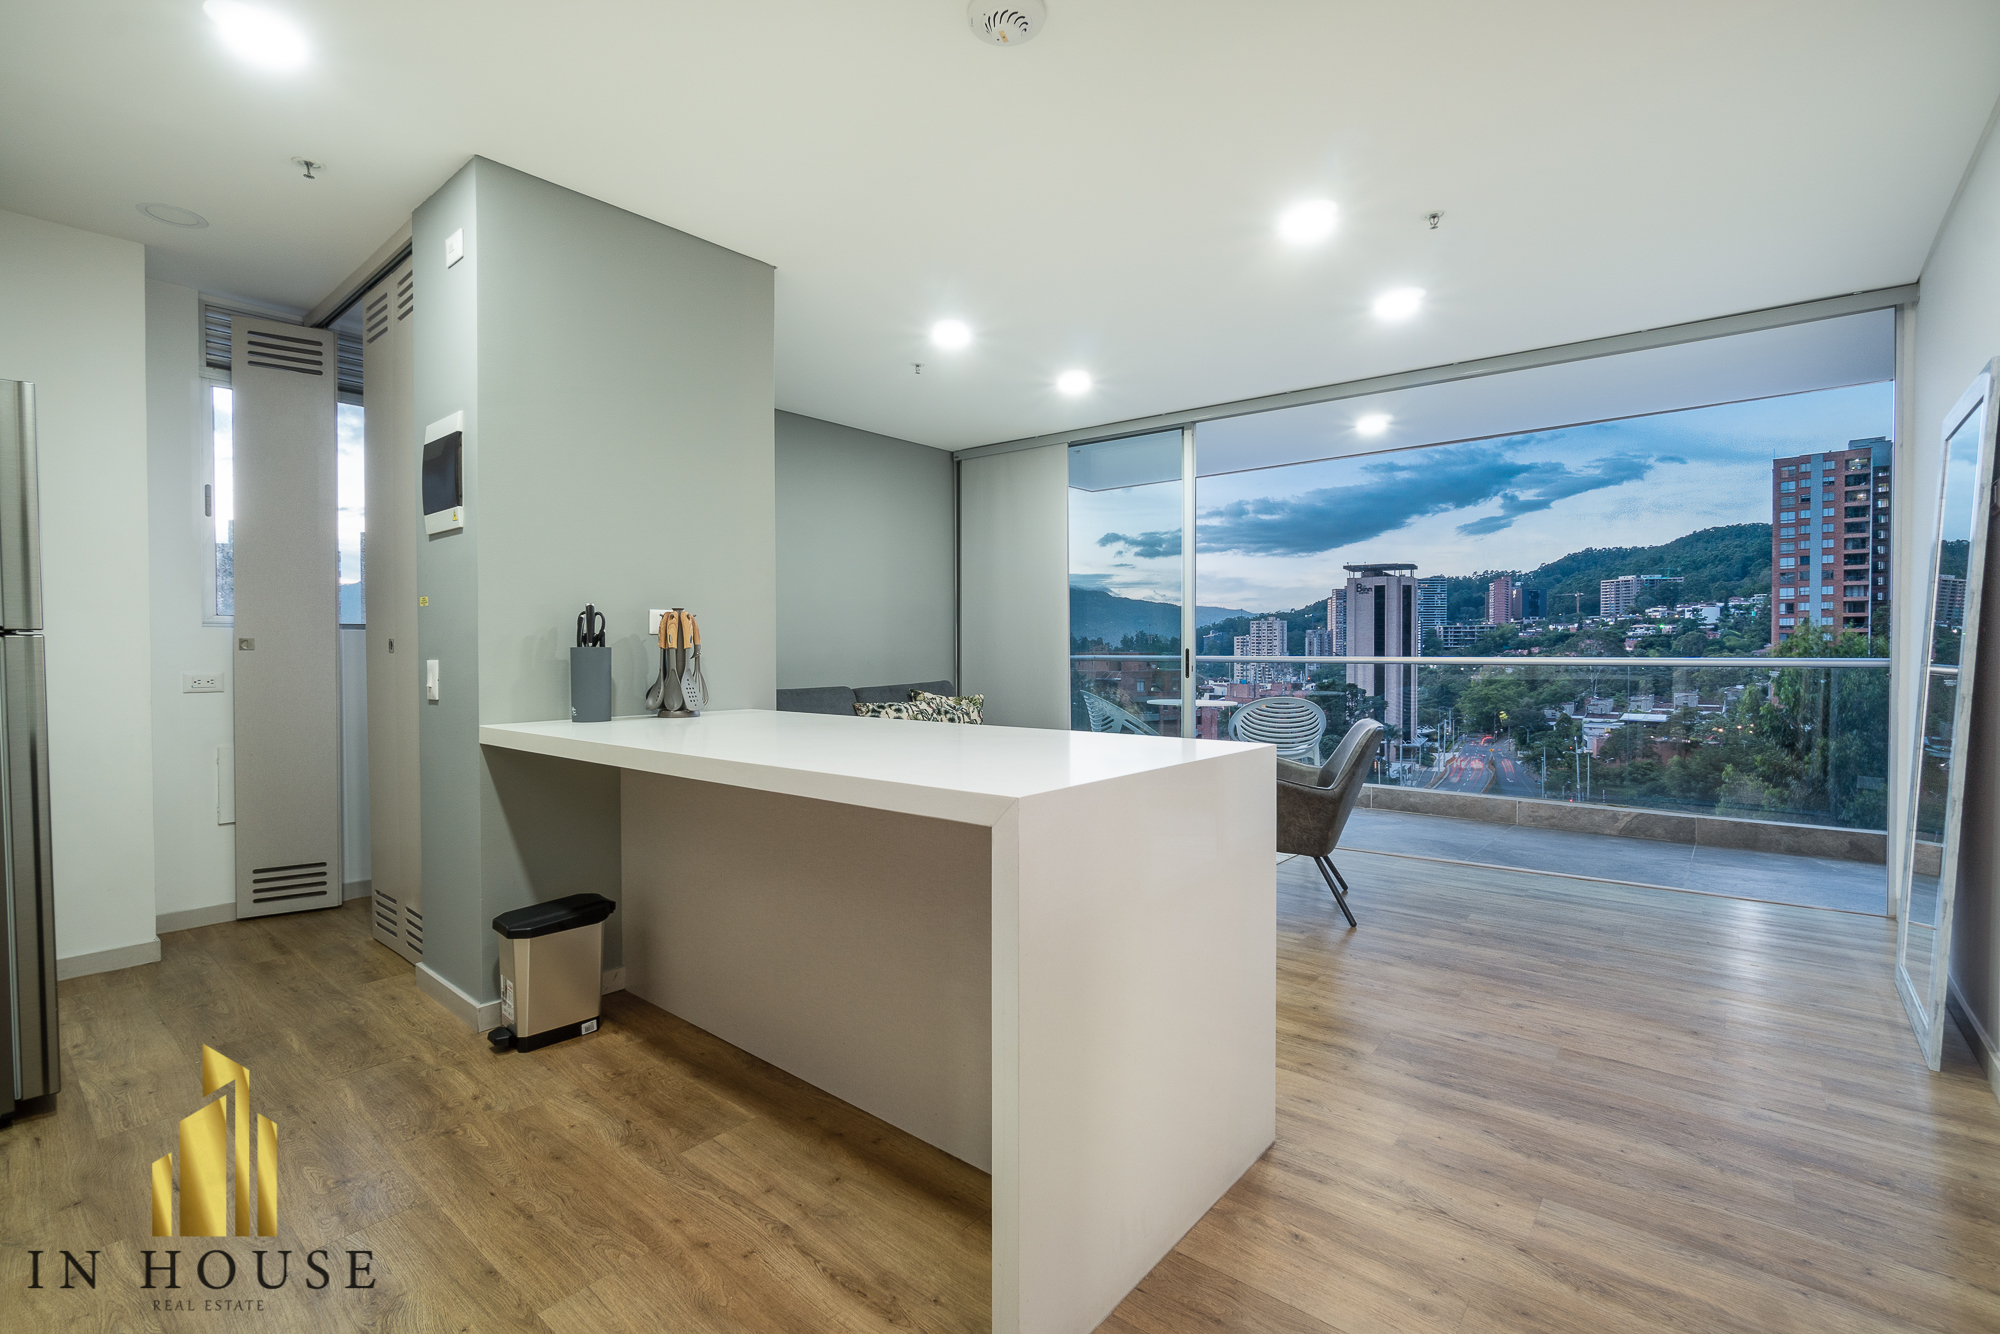 Urban 701 – Avant-garde architecture with beautiful view of the city